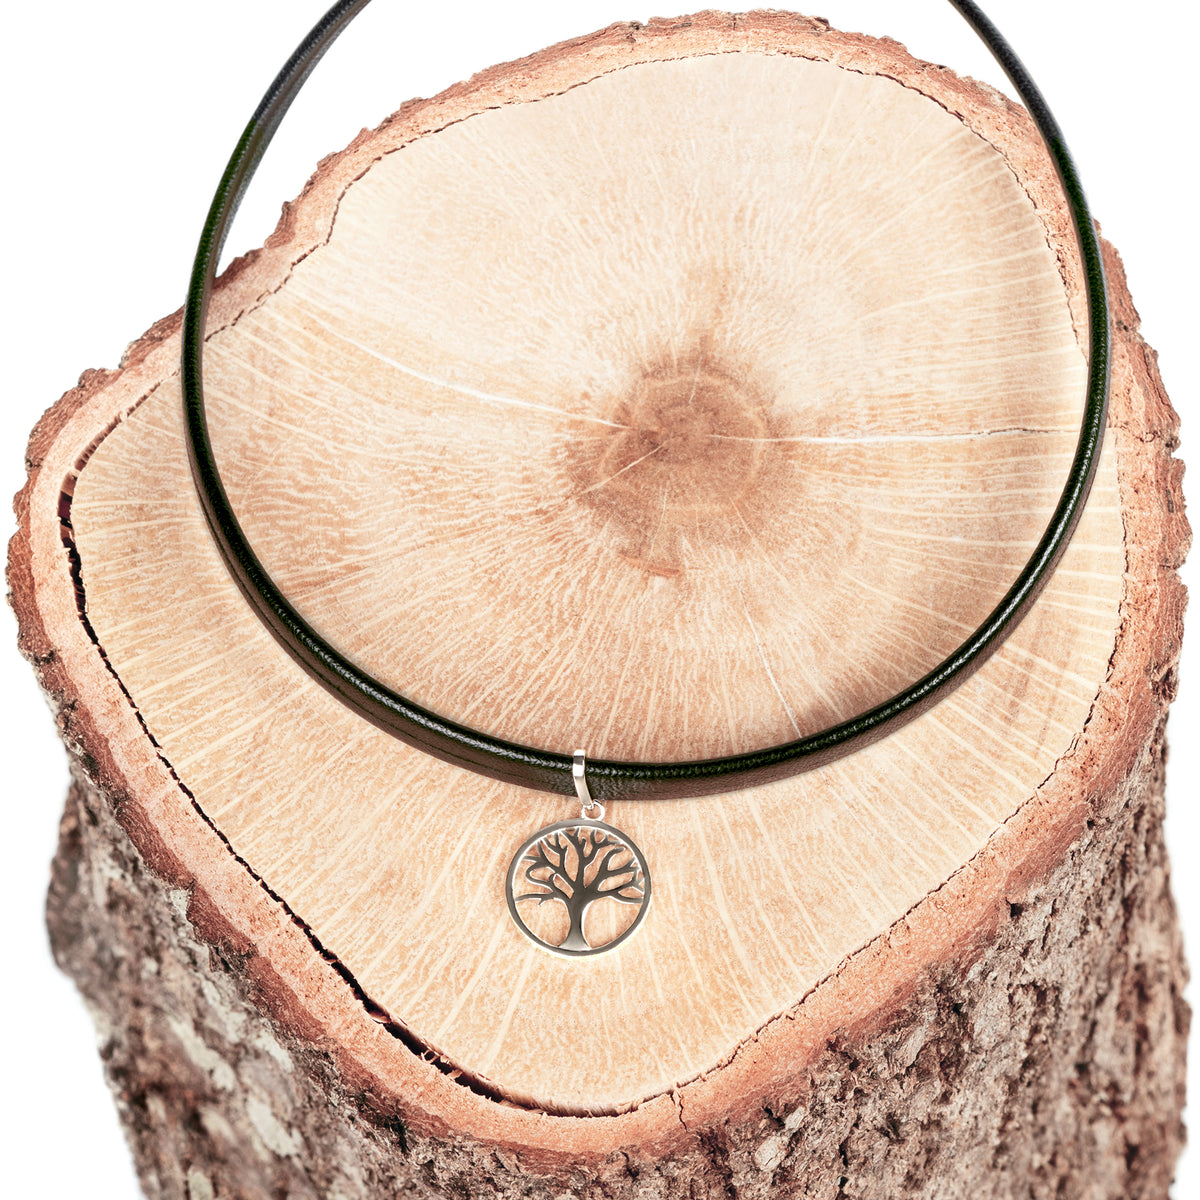 Black Choker Necklace with Tree of Life Pendant - Silver